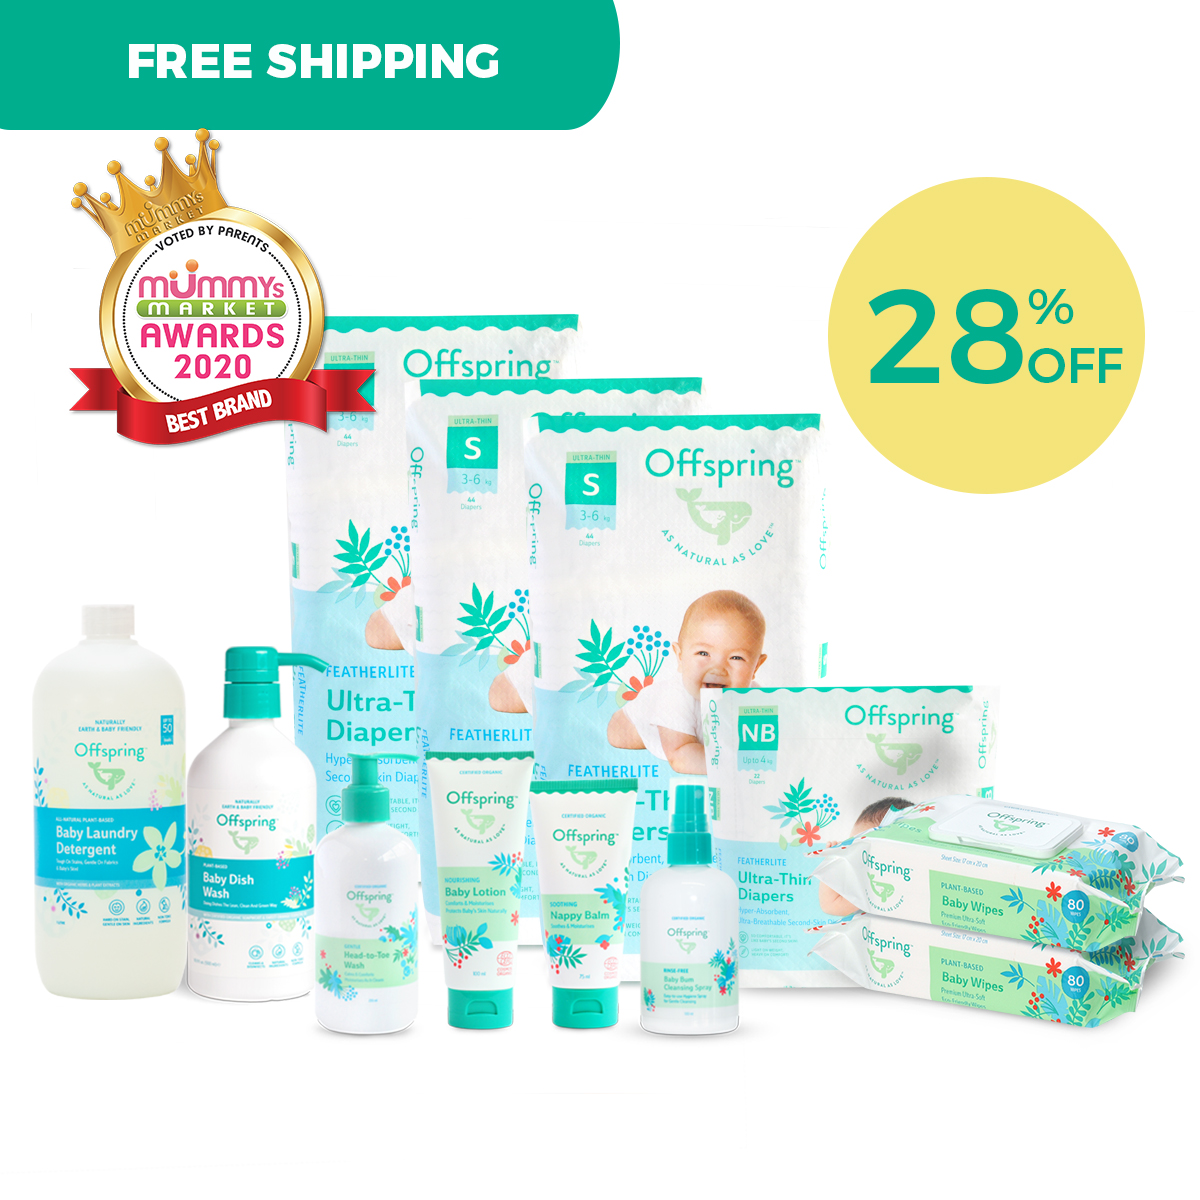 baby-fairOffspring Ultimate Ultra-thin Newborn Bundle (Diapers,wipes,lotion,nappy balm,bodywash and MORE)